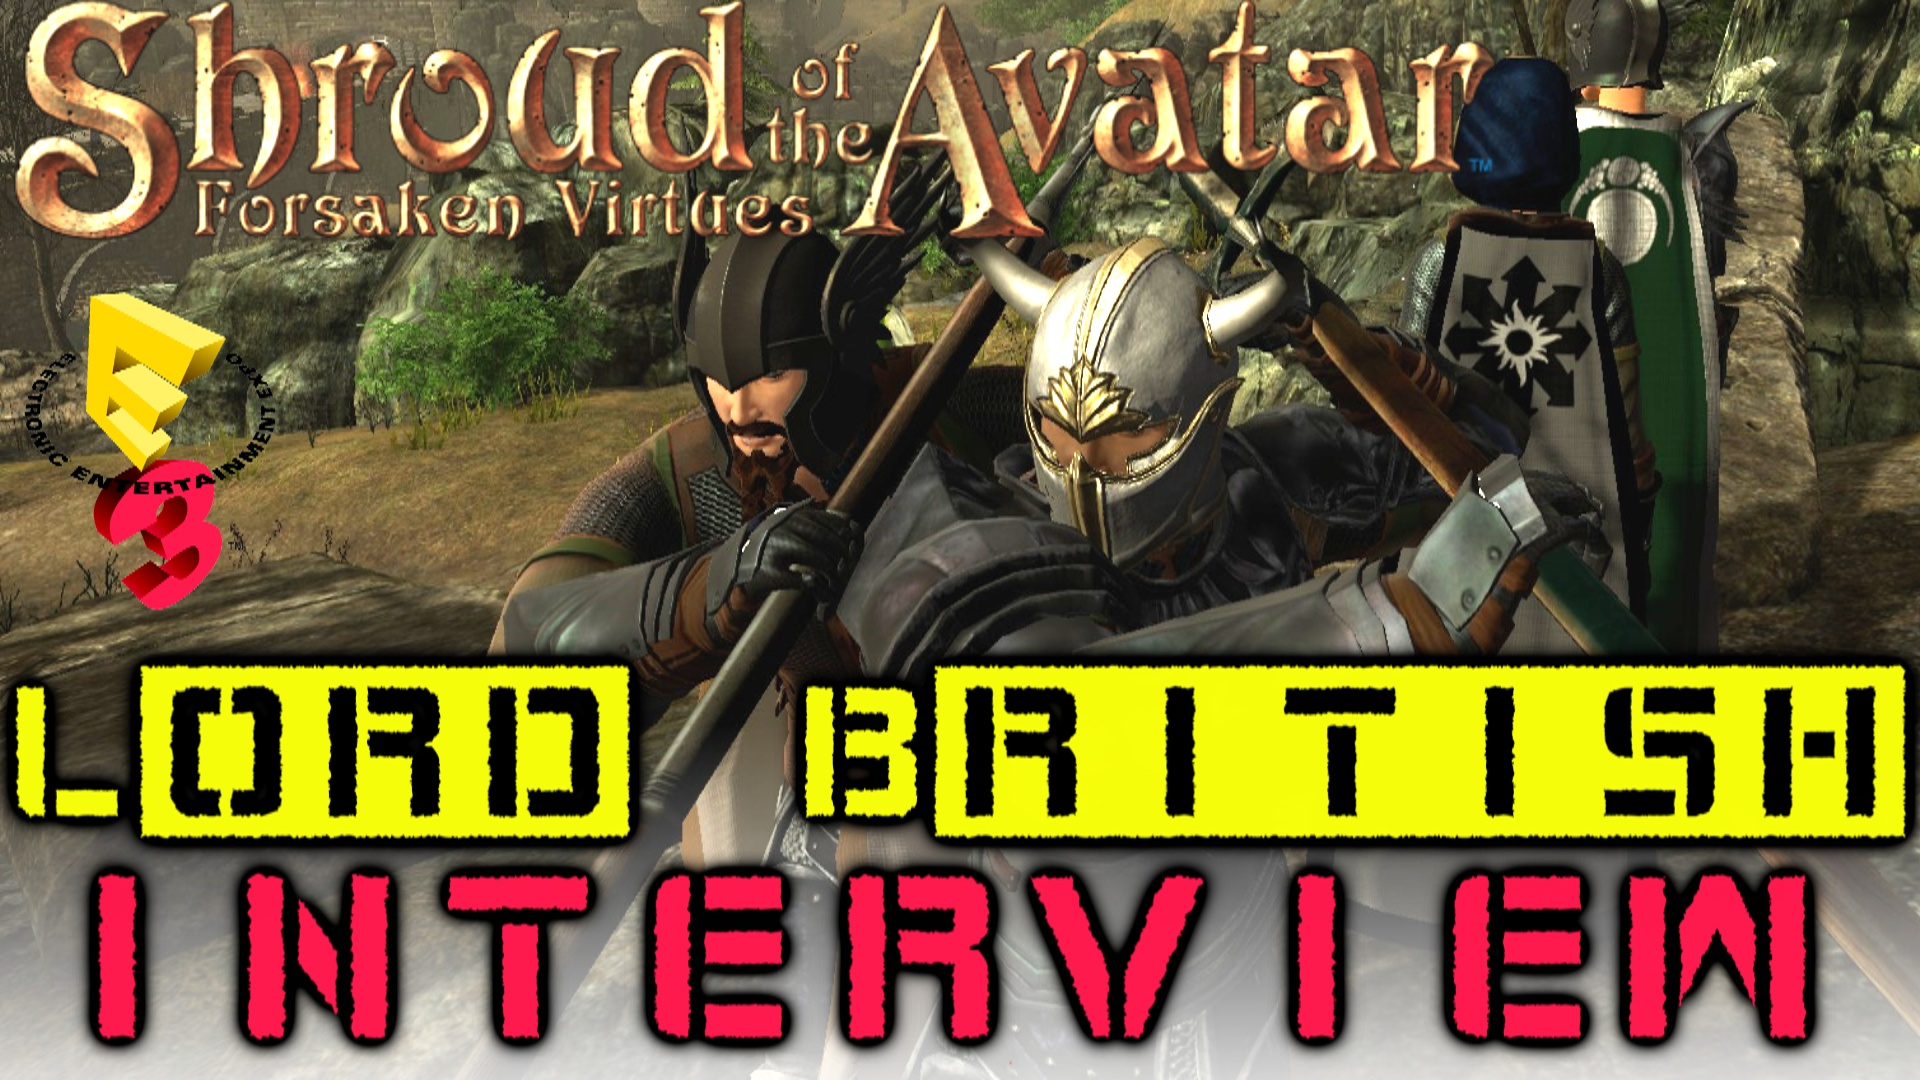 Shroud of the Avatar - Interview with Lord British